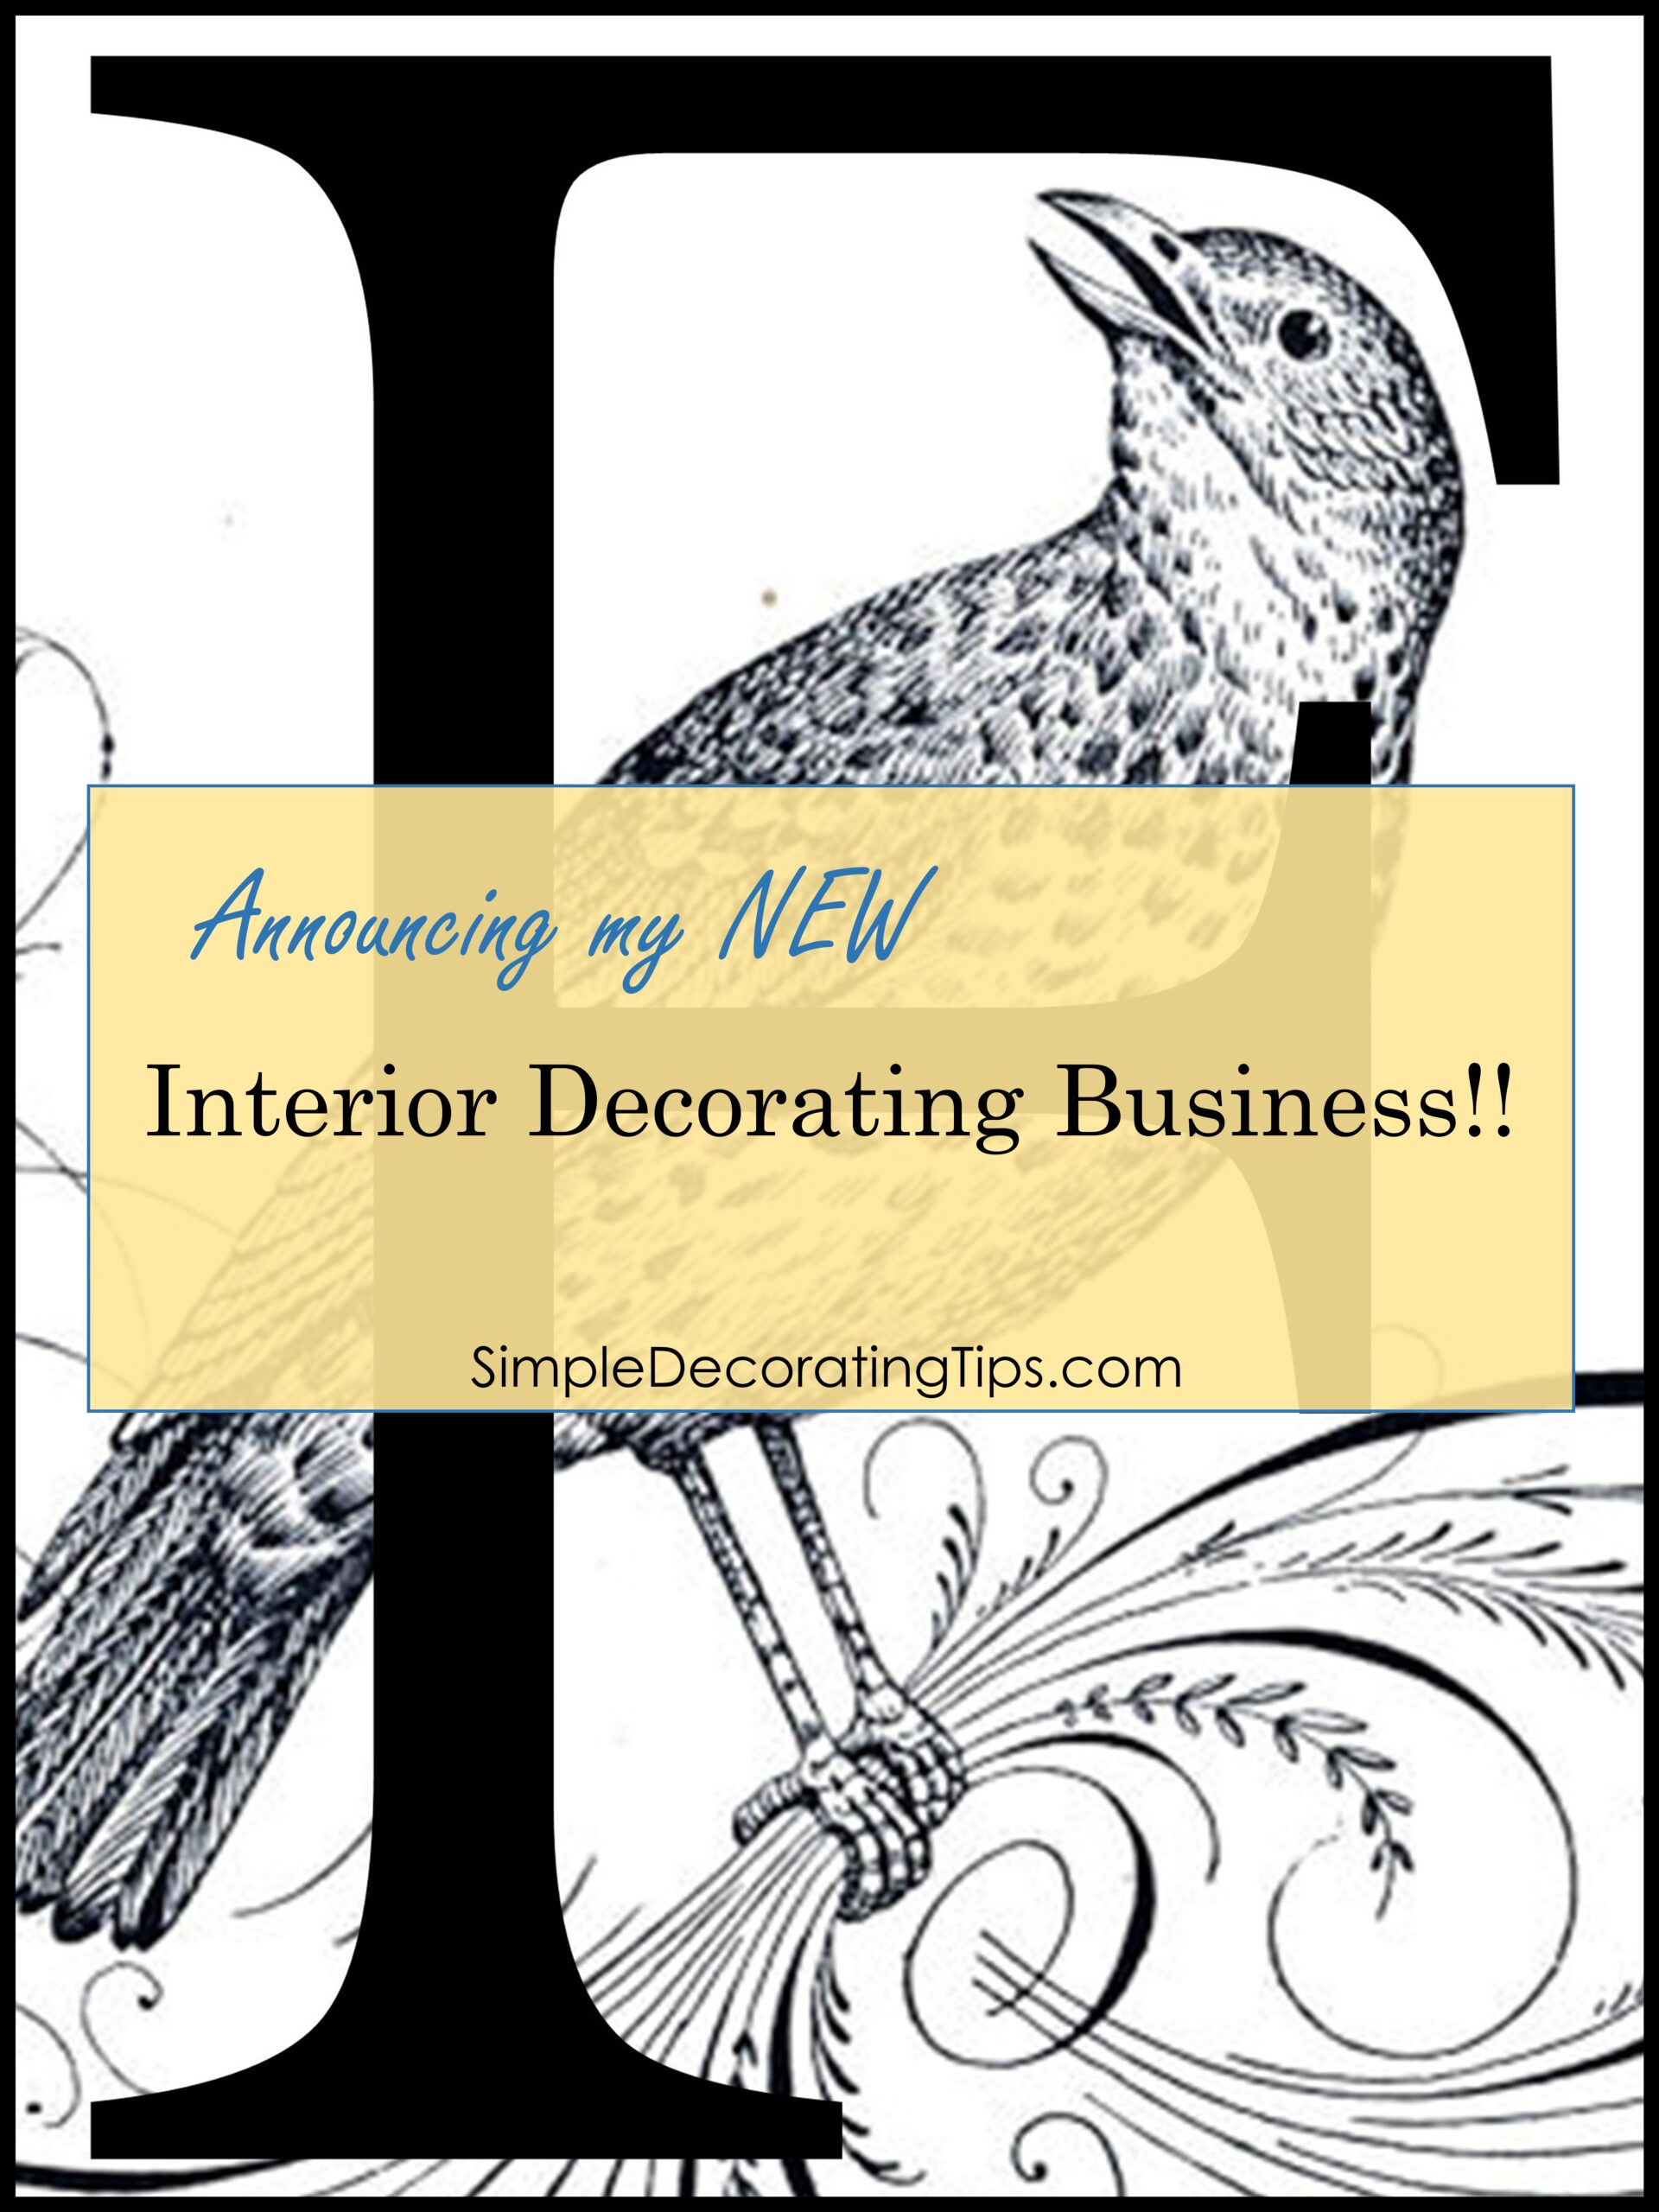 Announcing My New Interior Decorating Business! - SIMPLE DECORATING TIPS